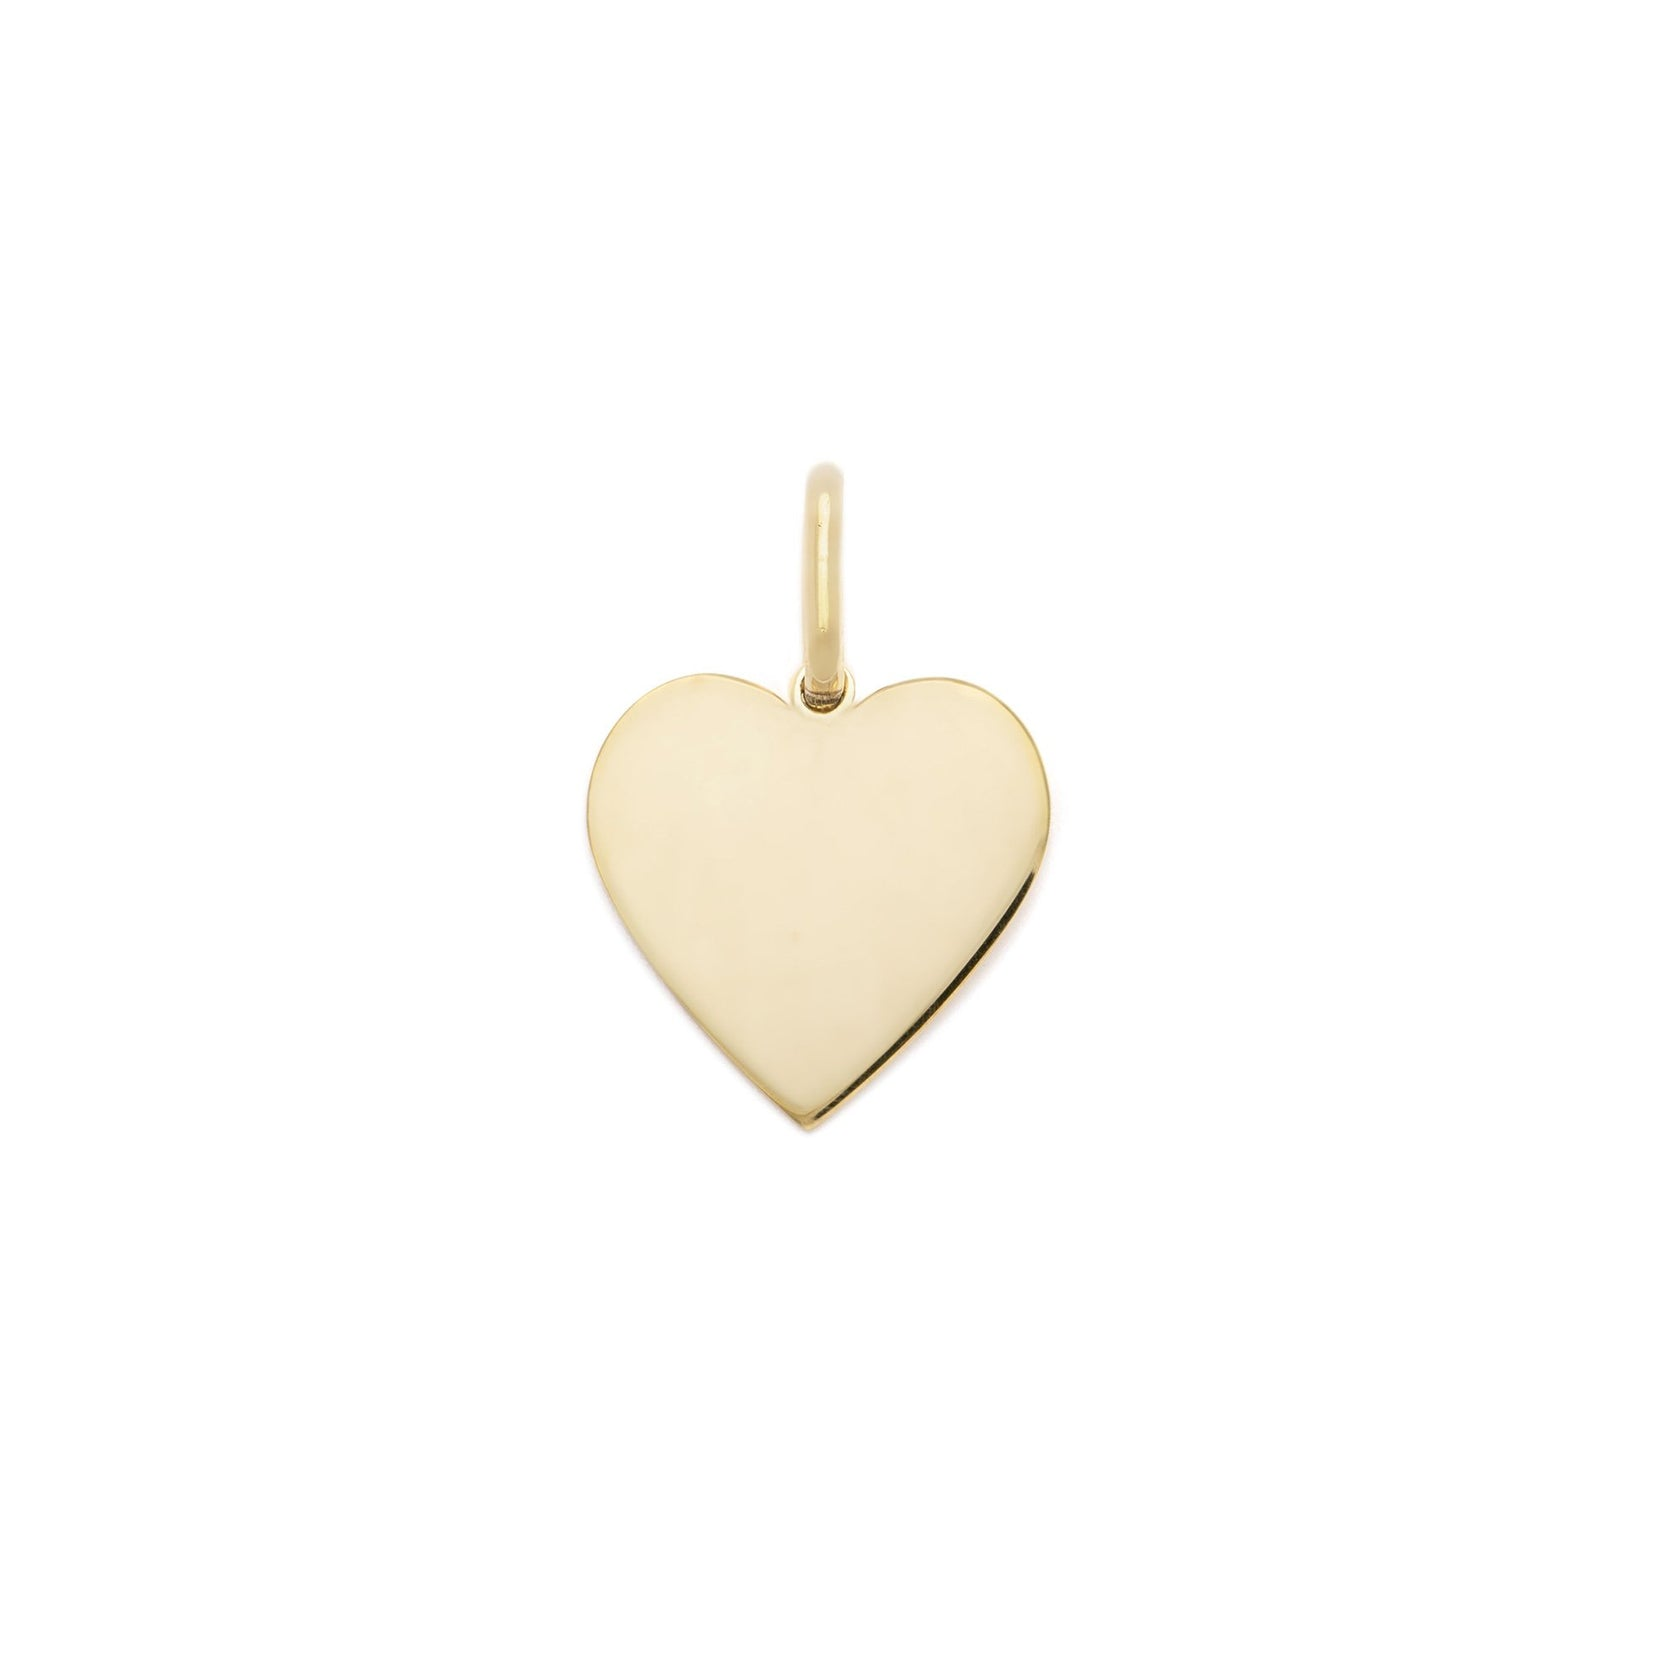 15mm Heart Charm - 14k Gold Vermeil